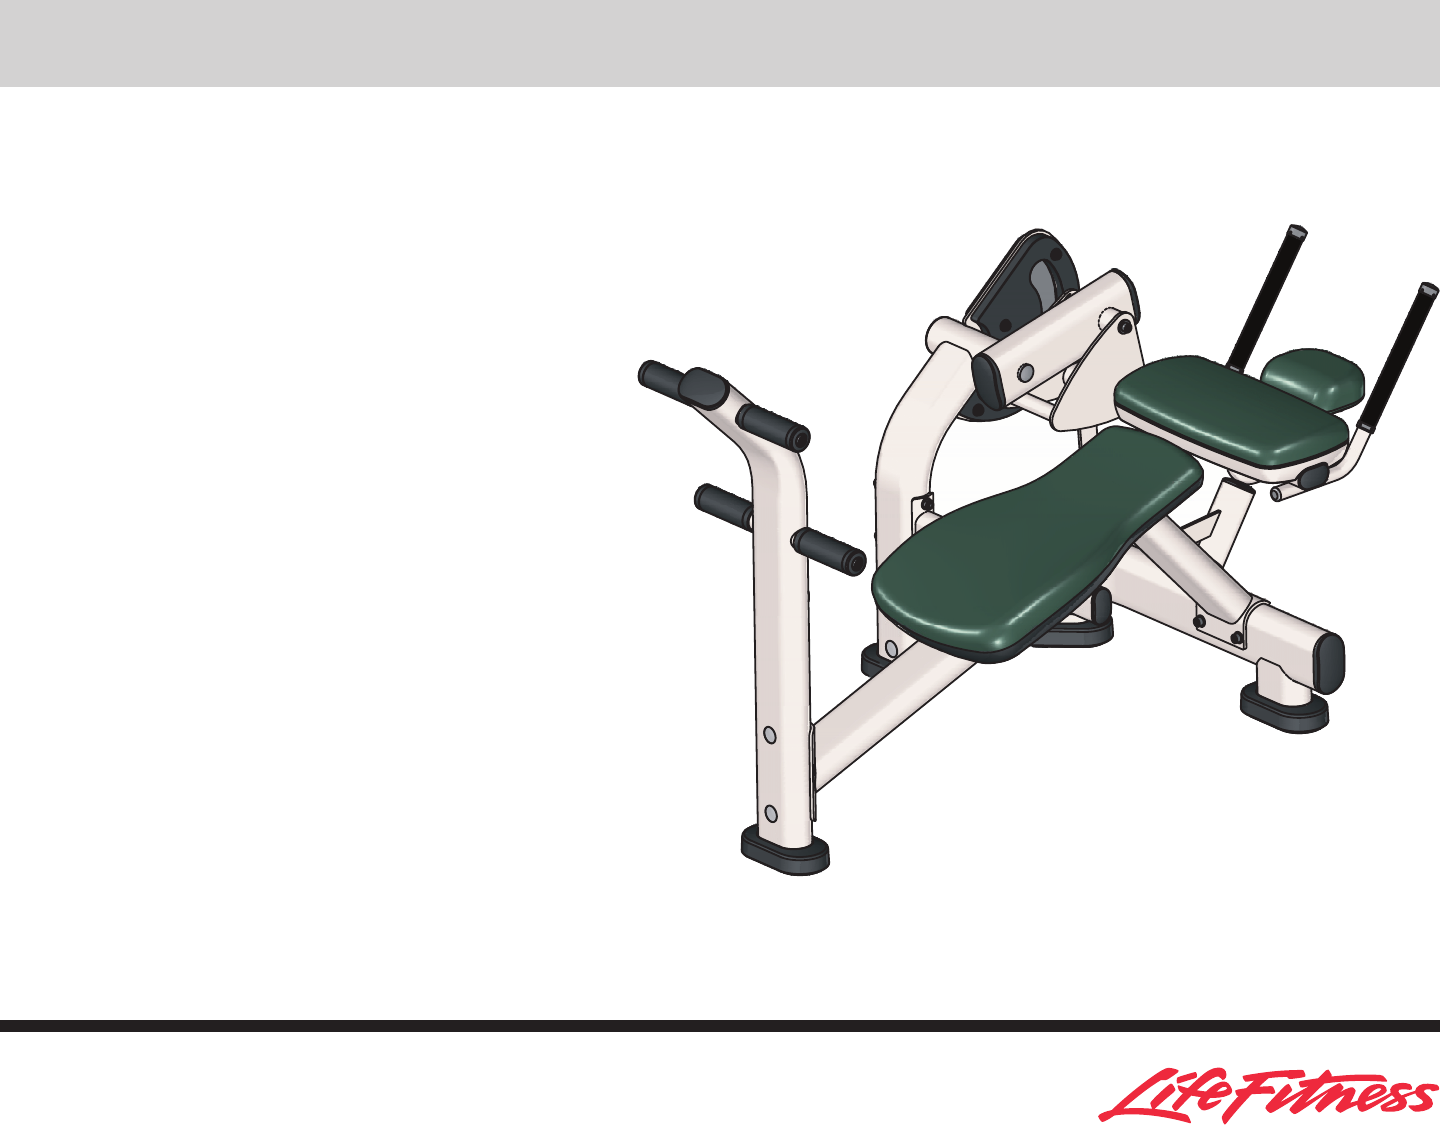 Life Fitness Home Gym Ab Crunch Bench User Guide